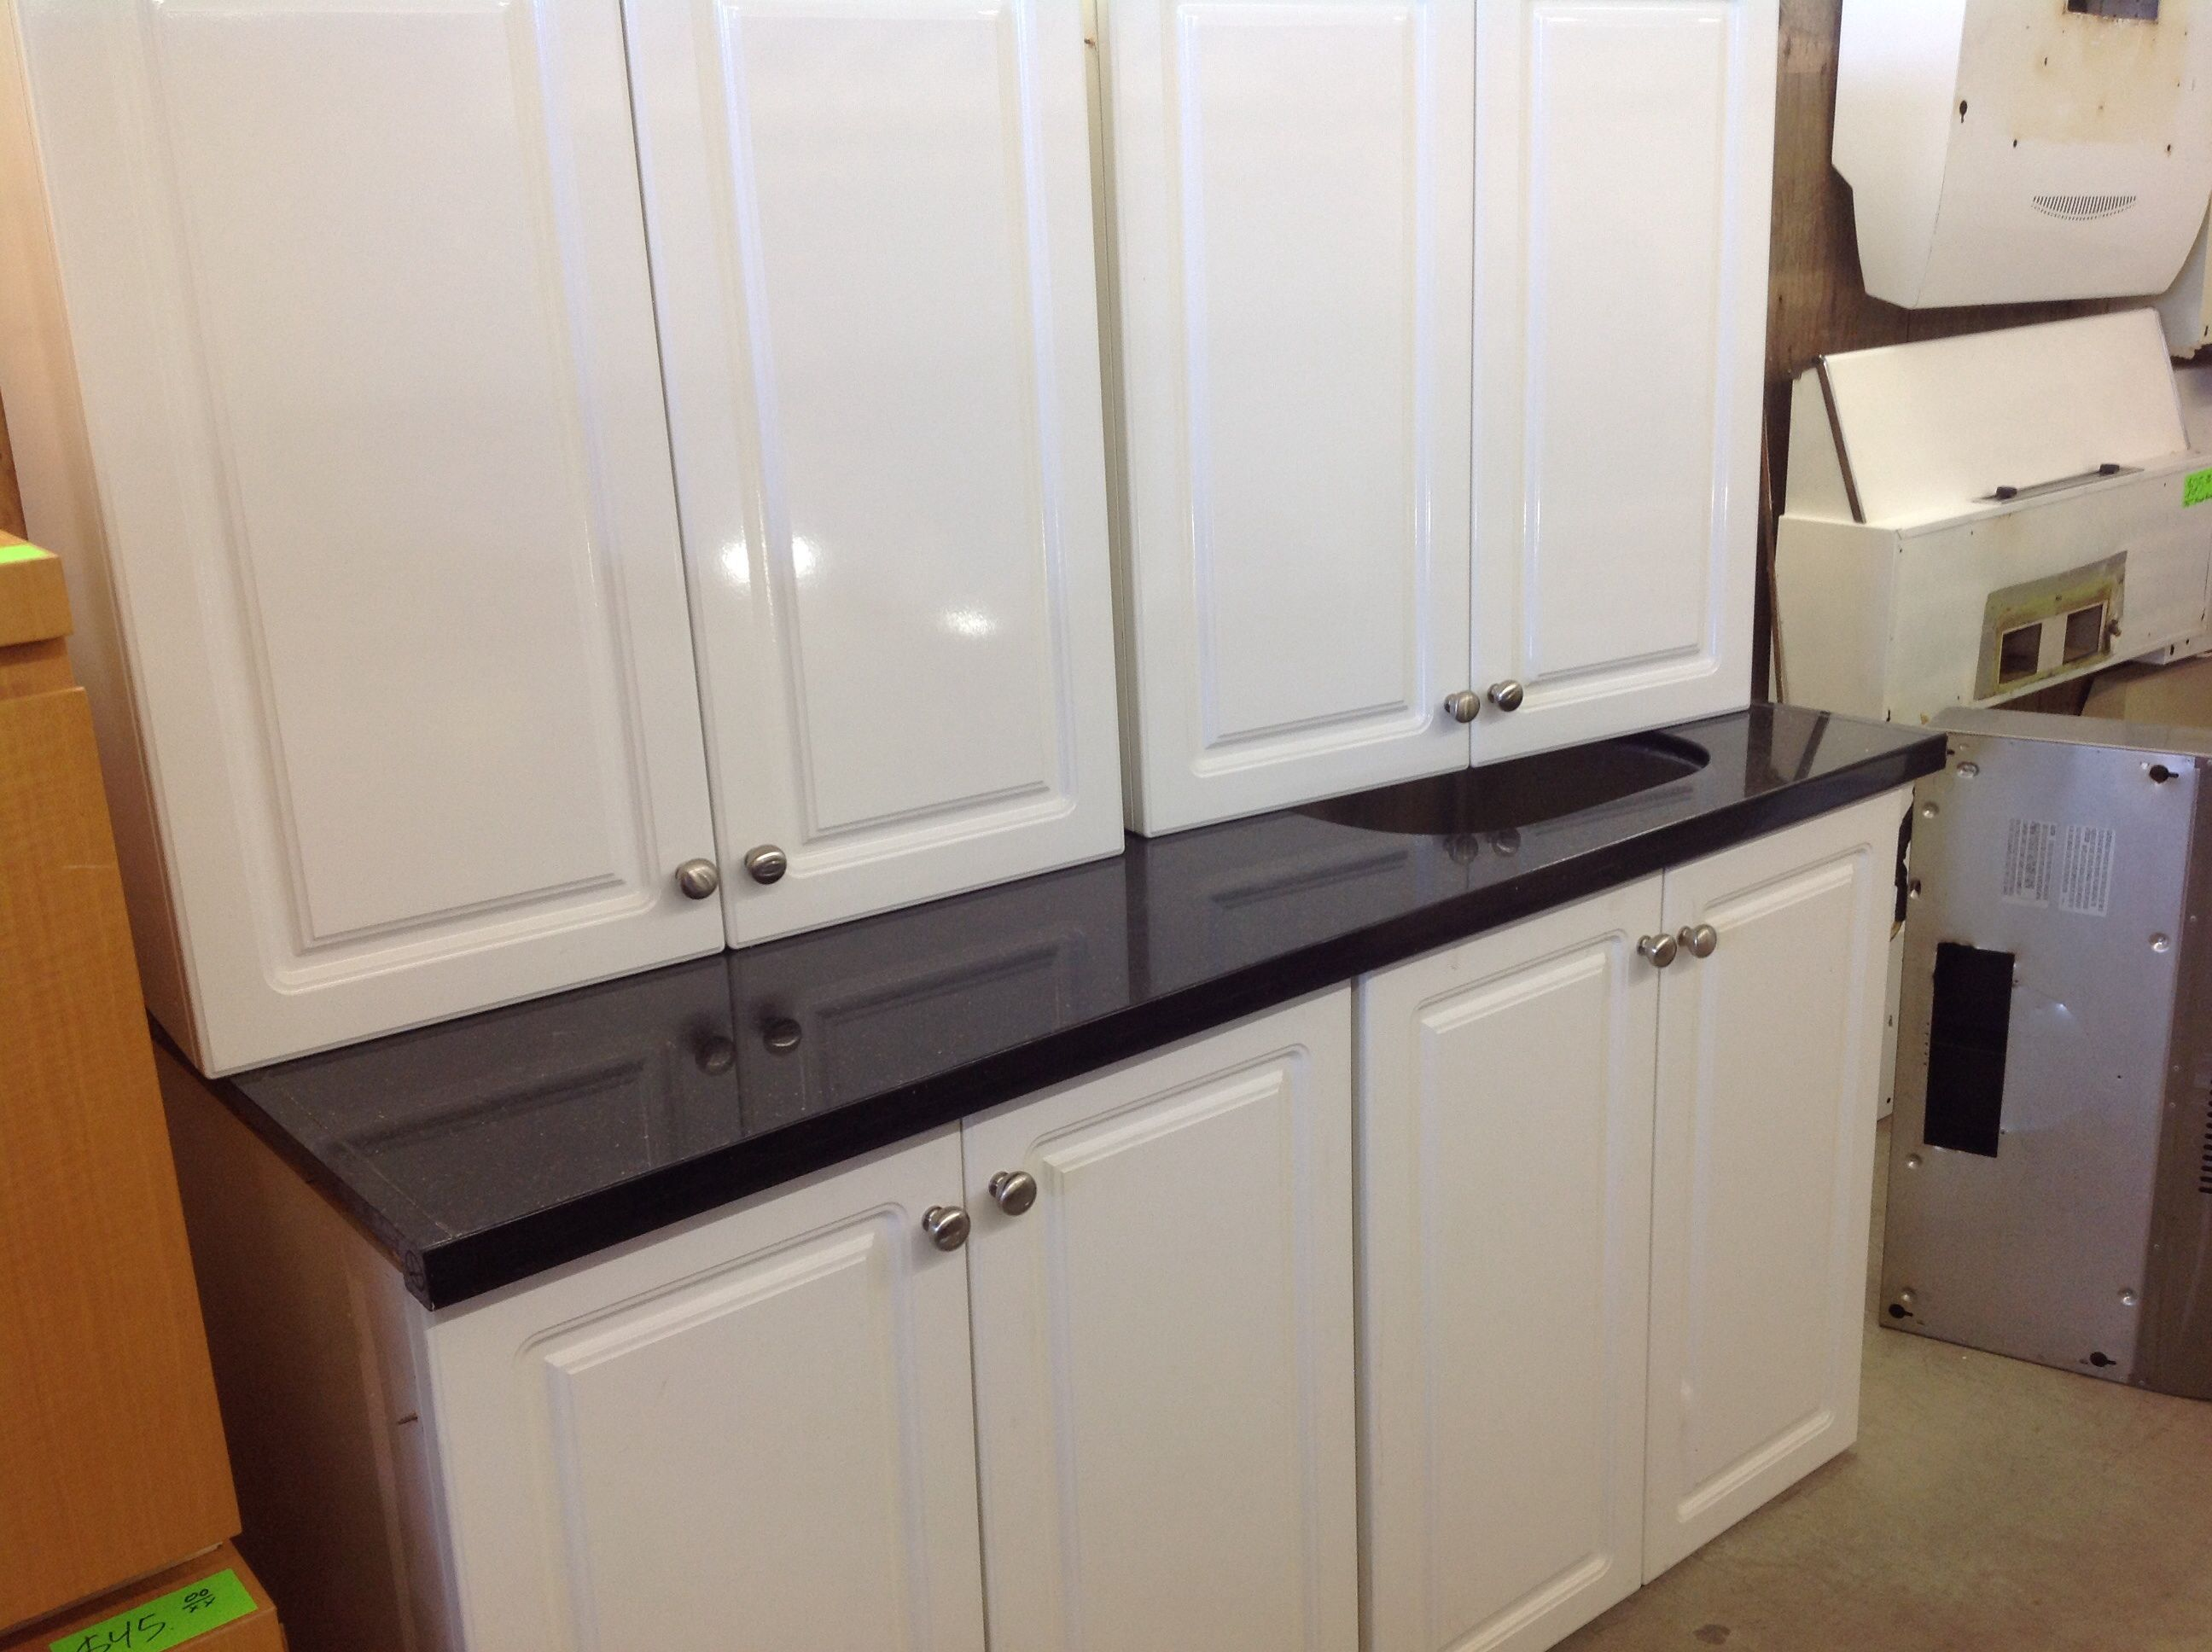 Used Kitchen Sets Chilliwack New And Used Building Materials Inc Kitchen Sets Window Handles Kitchen Cabinets